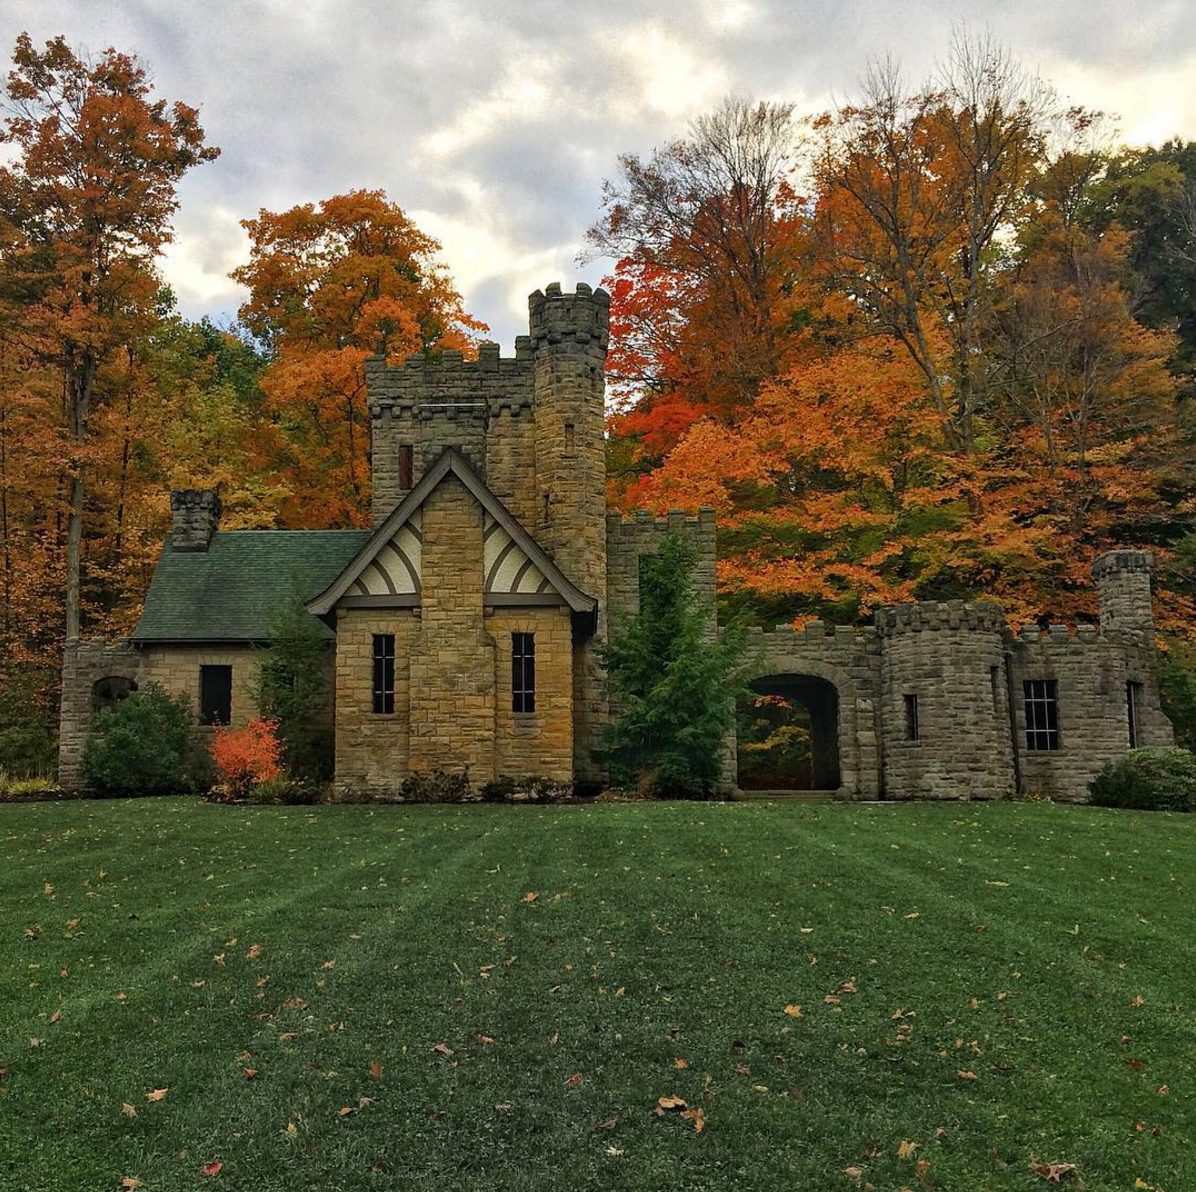 Photo by @yukoncolin at Squire's Castle in Willoughby Hills, OH